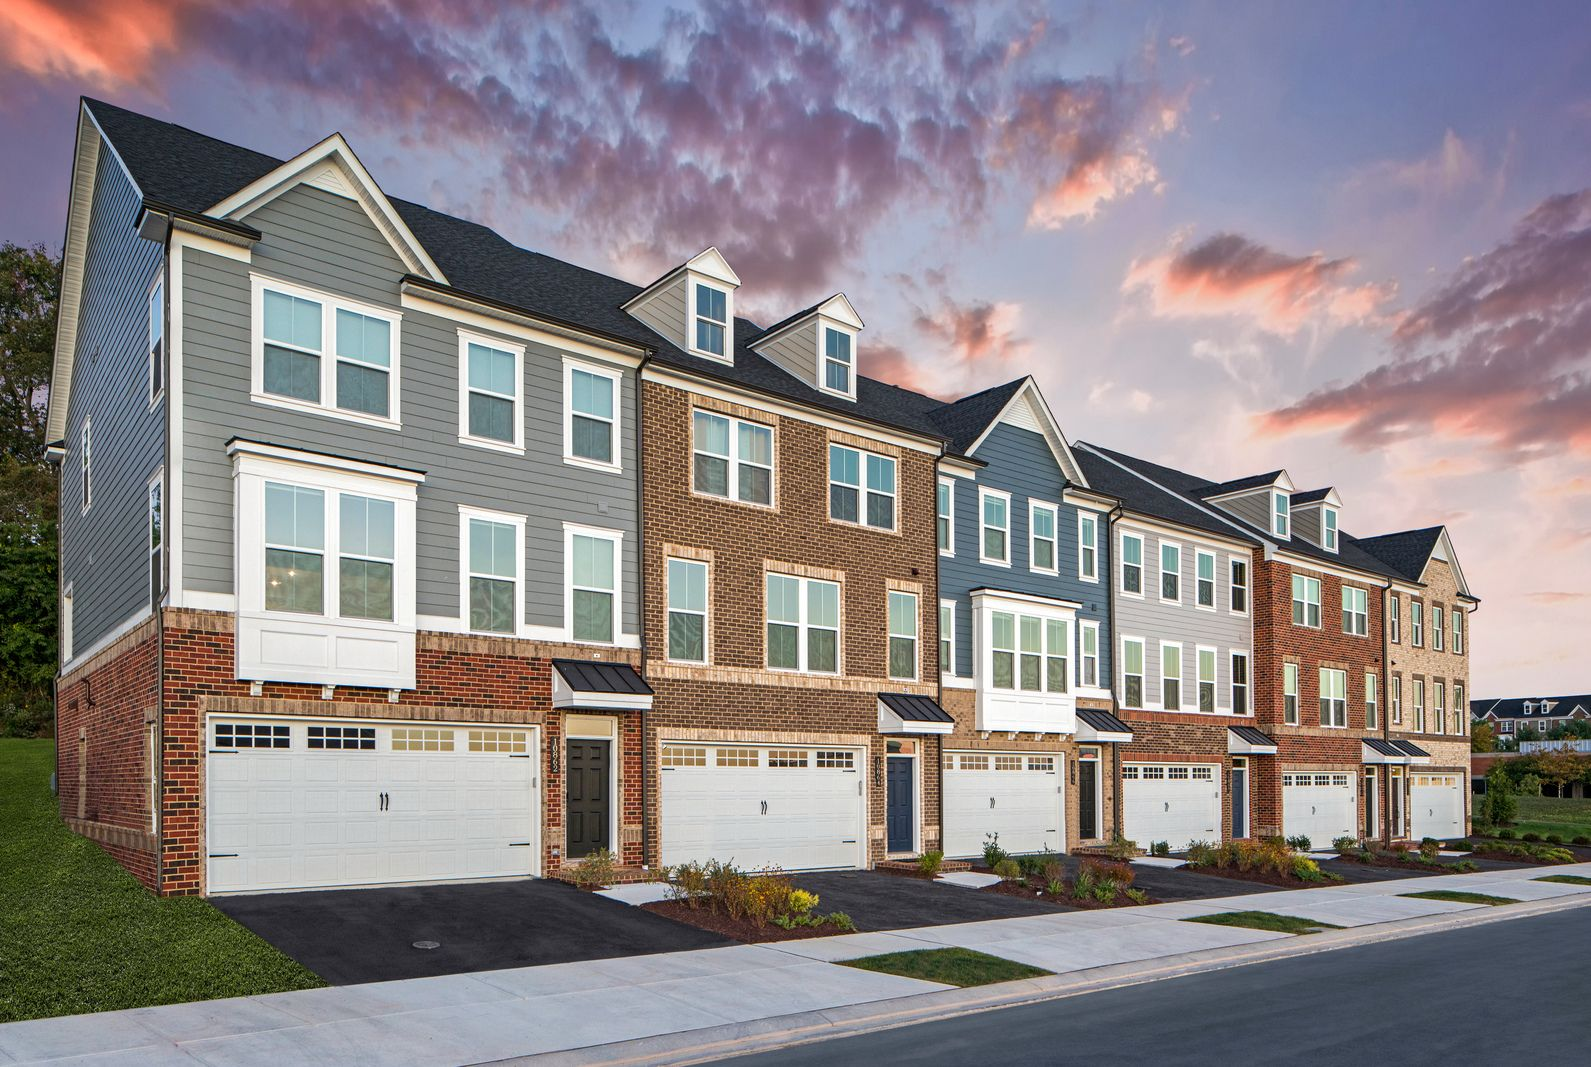 DISCOVER BALTIMORE'S MOST EXQUISITE TOWNHOMES:NVHomes at Greenleigh is Baltimore County's most sought-after new home opportunity, with sizable living spaces, exceptional features, and luxury surprises around every corner.Schedule a visit today!